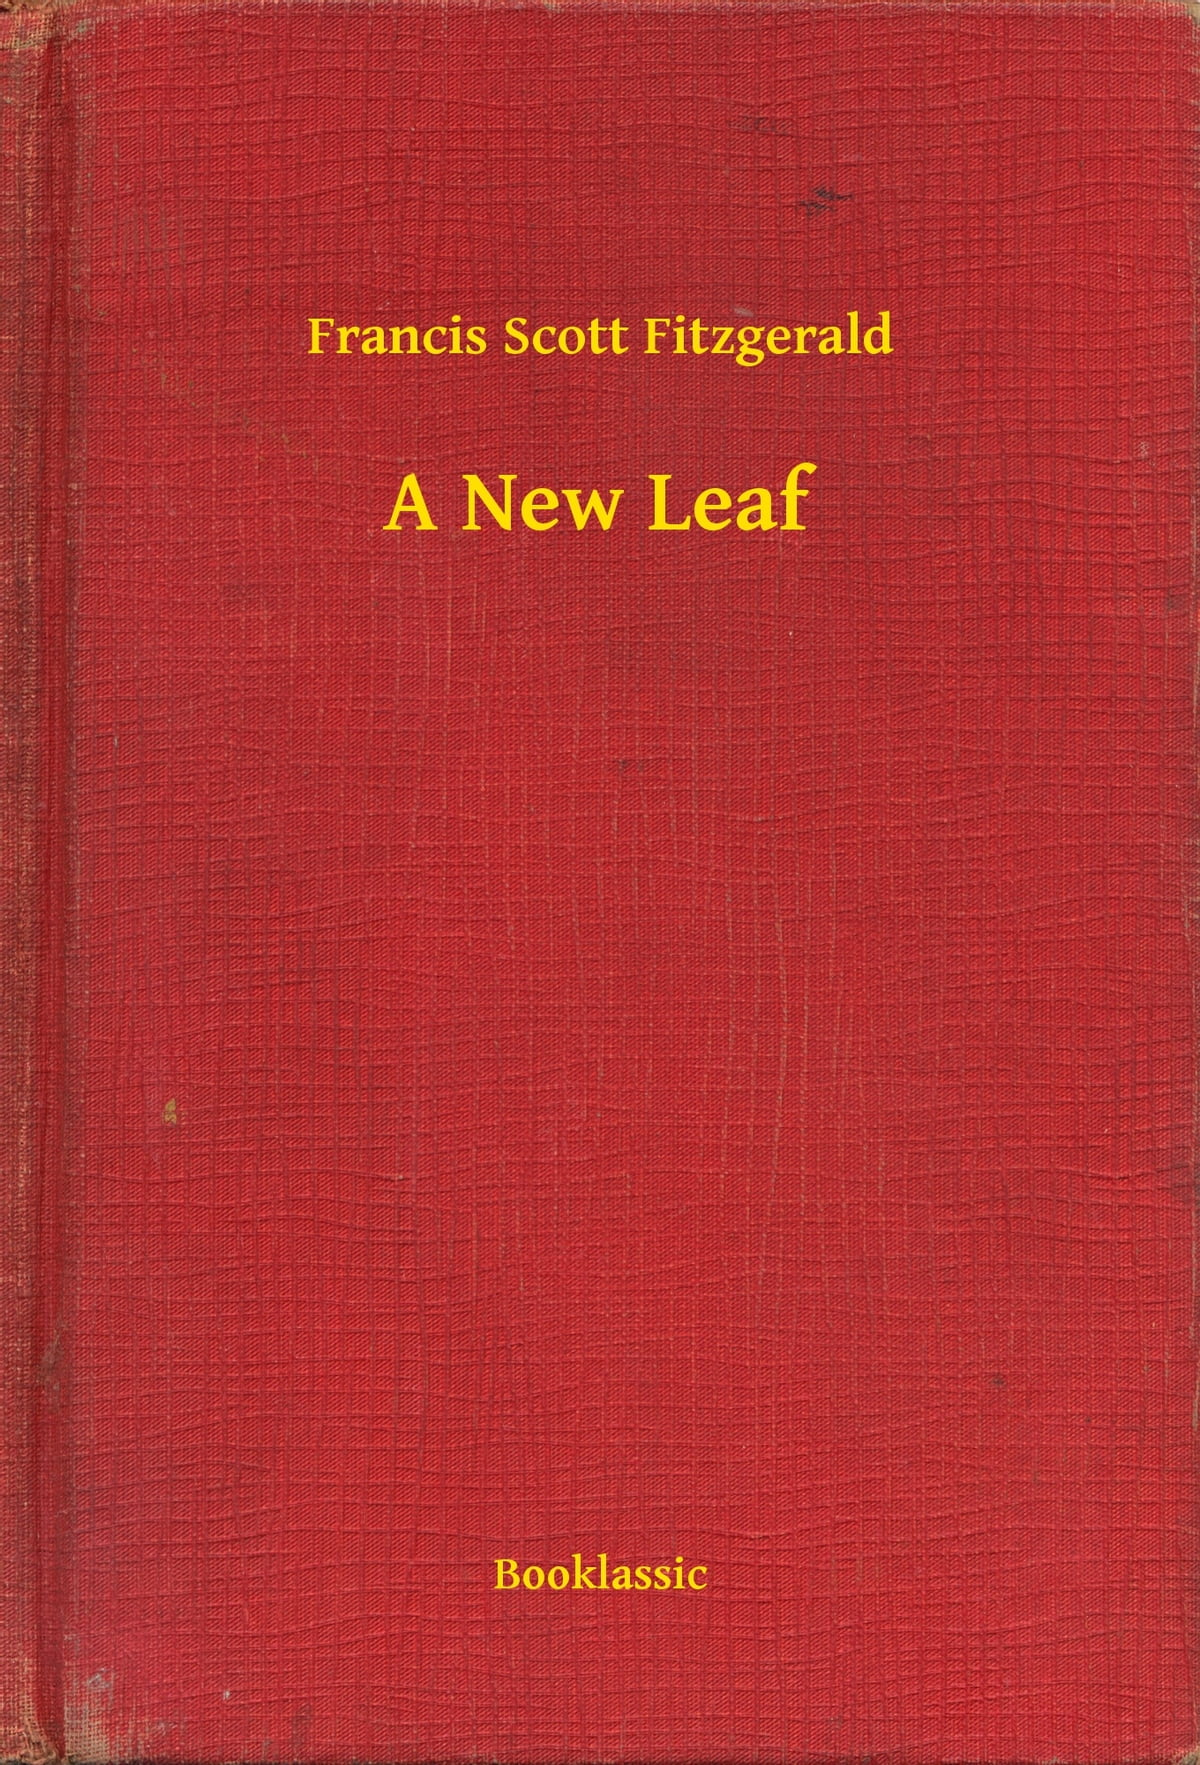 f scott fitzgeralds a new leaf beyond appearances essay The john a porter prize essay  they went out into the interminable forests beyond the  of these publica- tions never shook fitzgeralds firm belief in the.